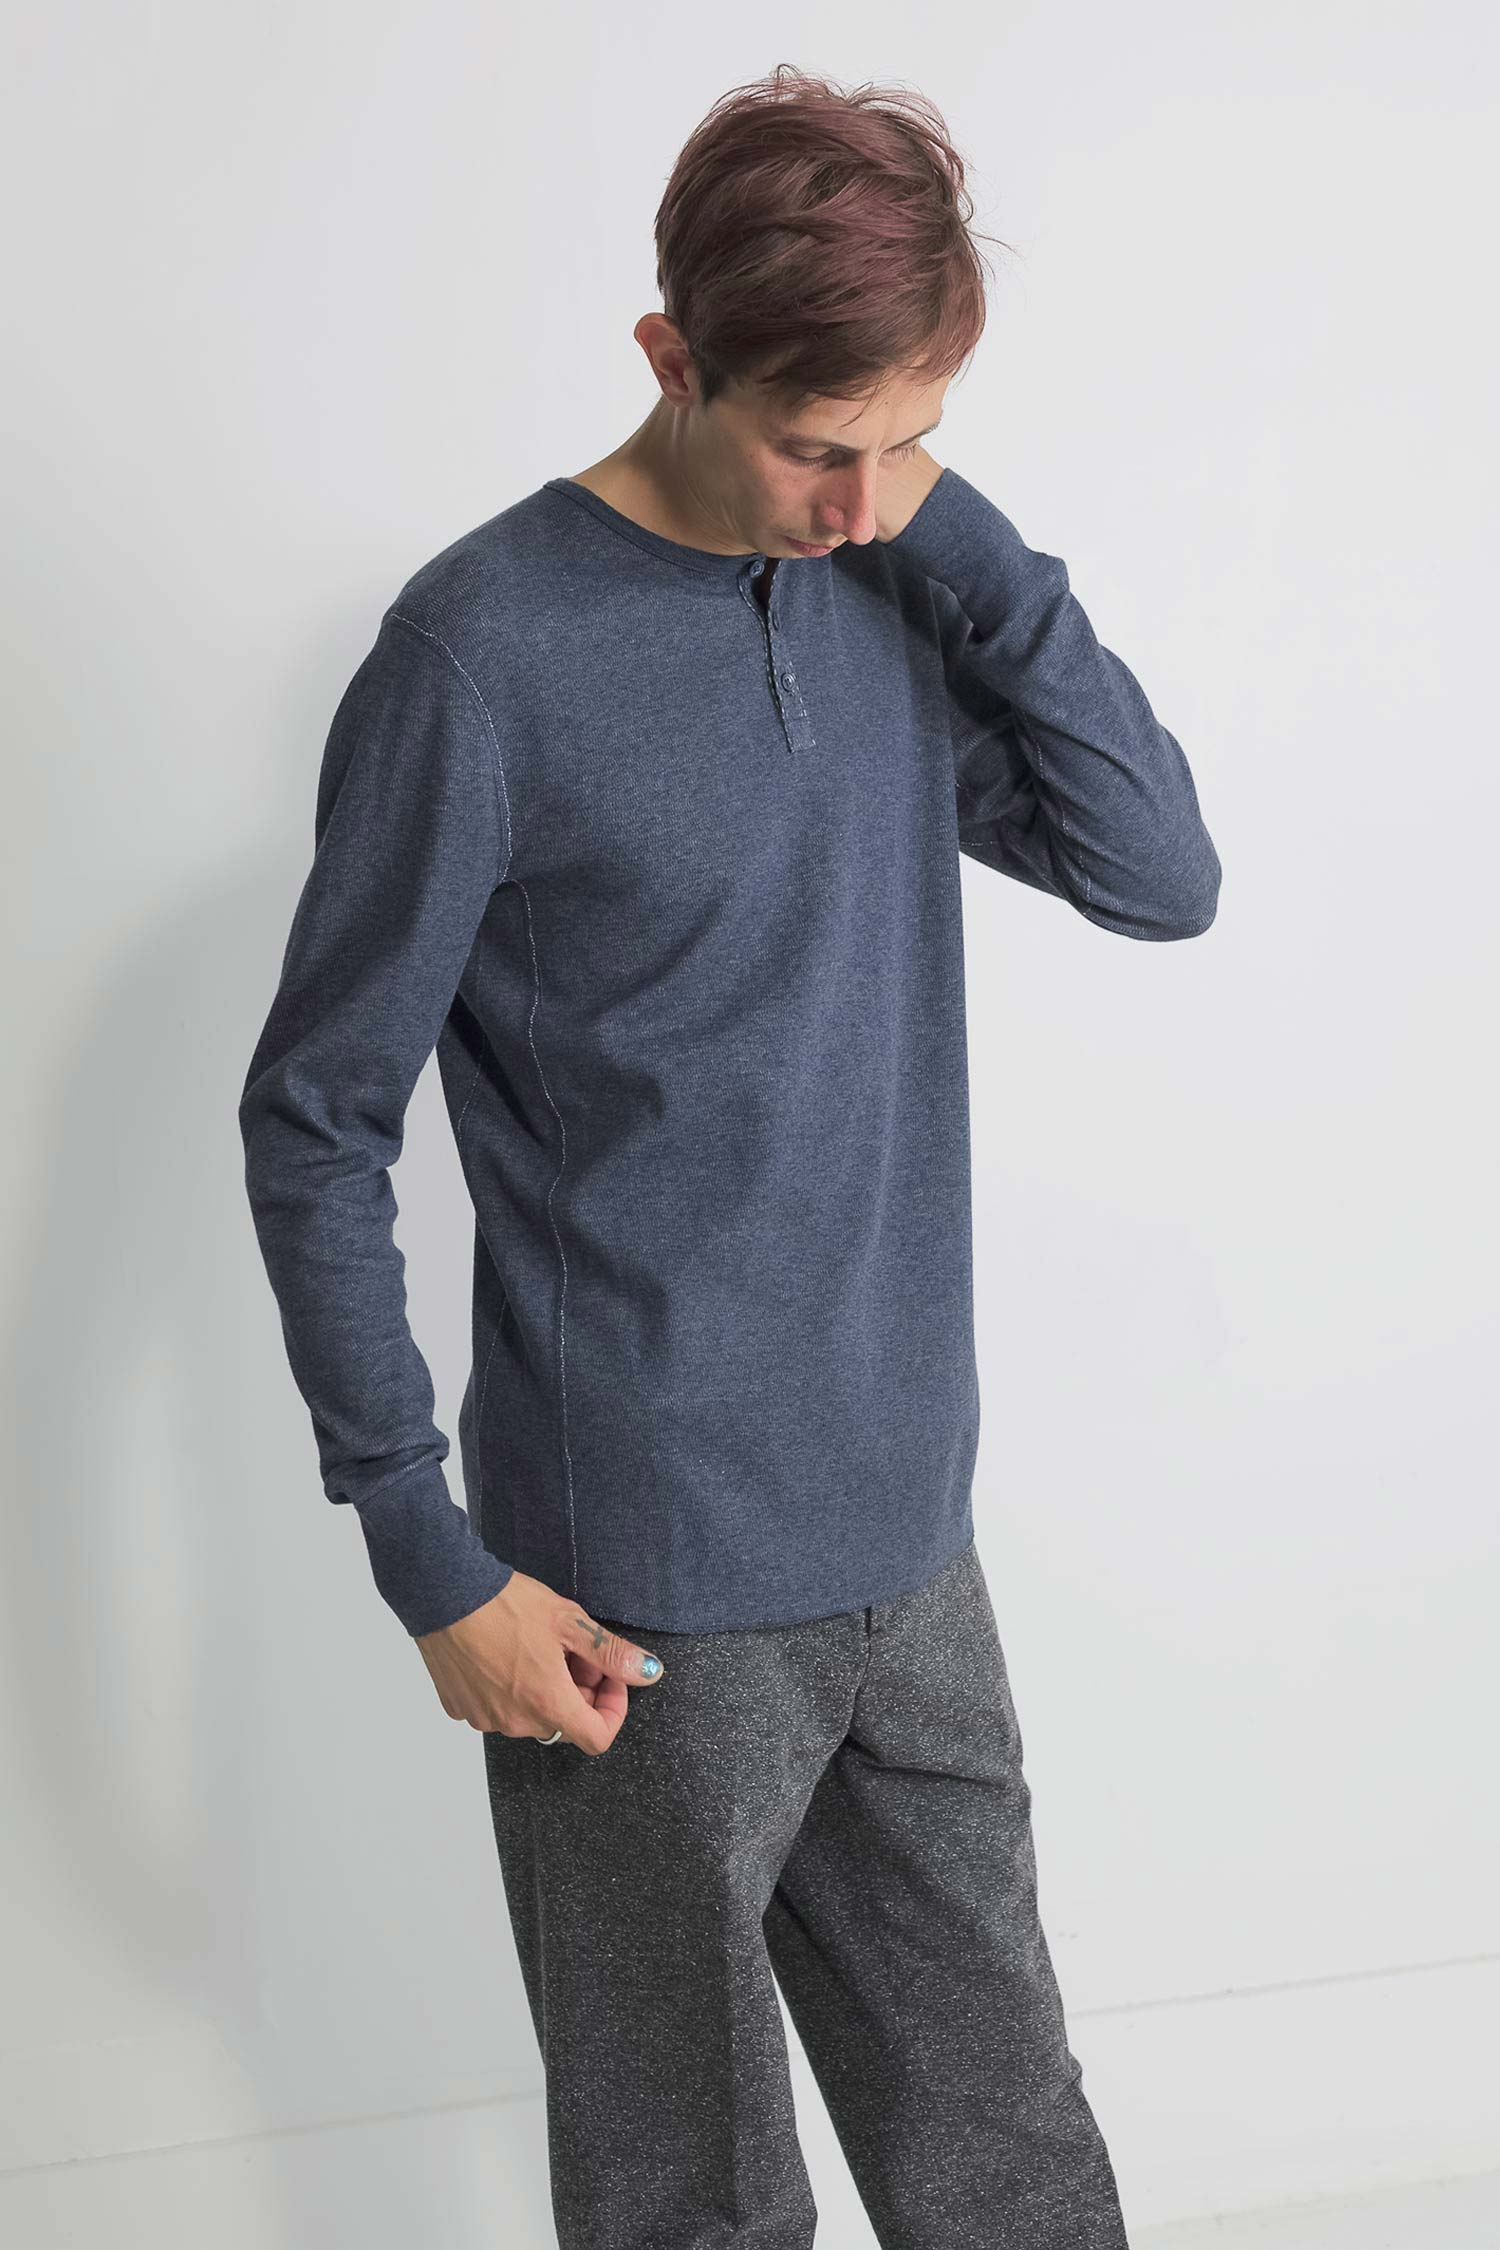 mesh thermal henley in navy 02